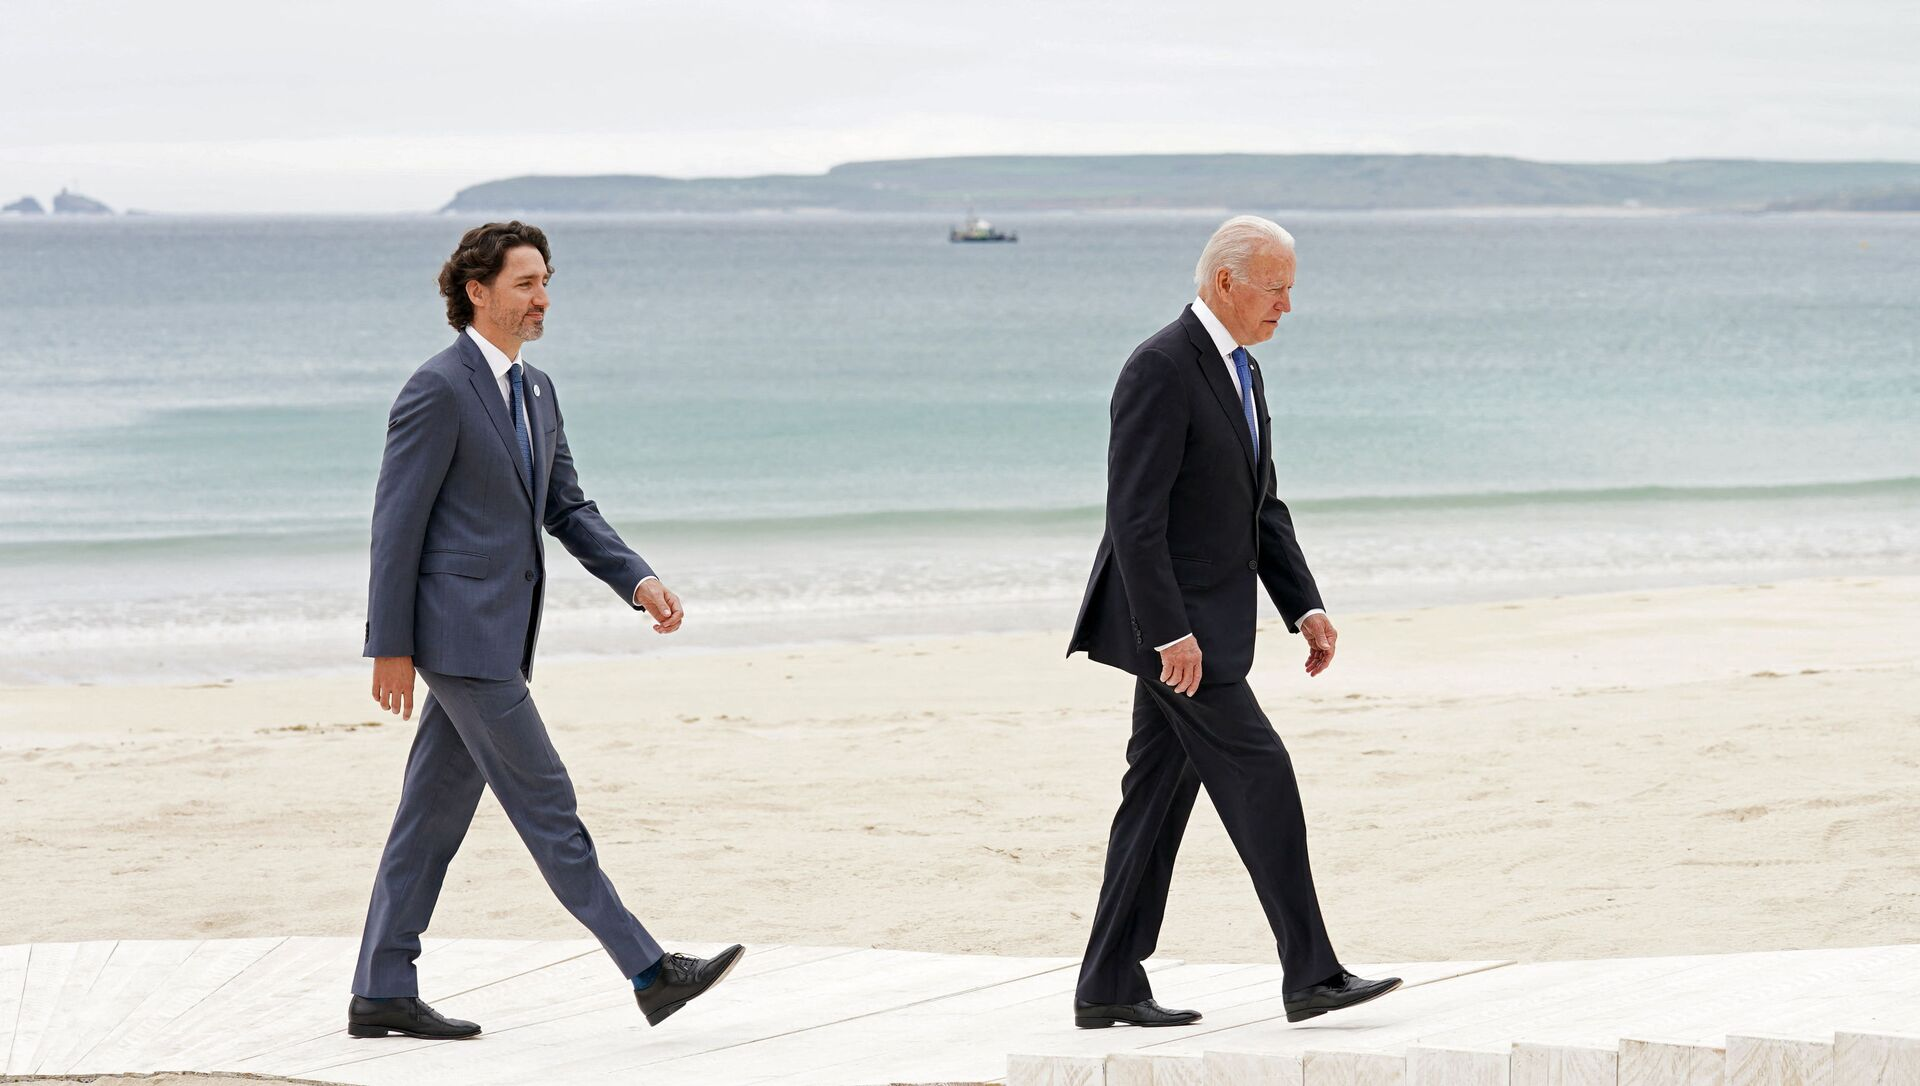 Canada's Prime Minister Justin Trudeau (L) and US President Joe Biden arrive to pose for the family photo during the G7 summit in Carbis Bay, Cornwall, south-west England on 11 June 2021. - Sputnik International, 1920, 03.08.2021